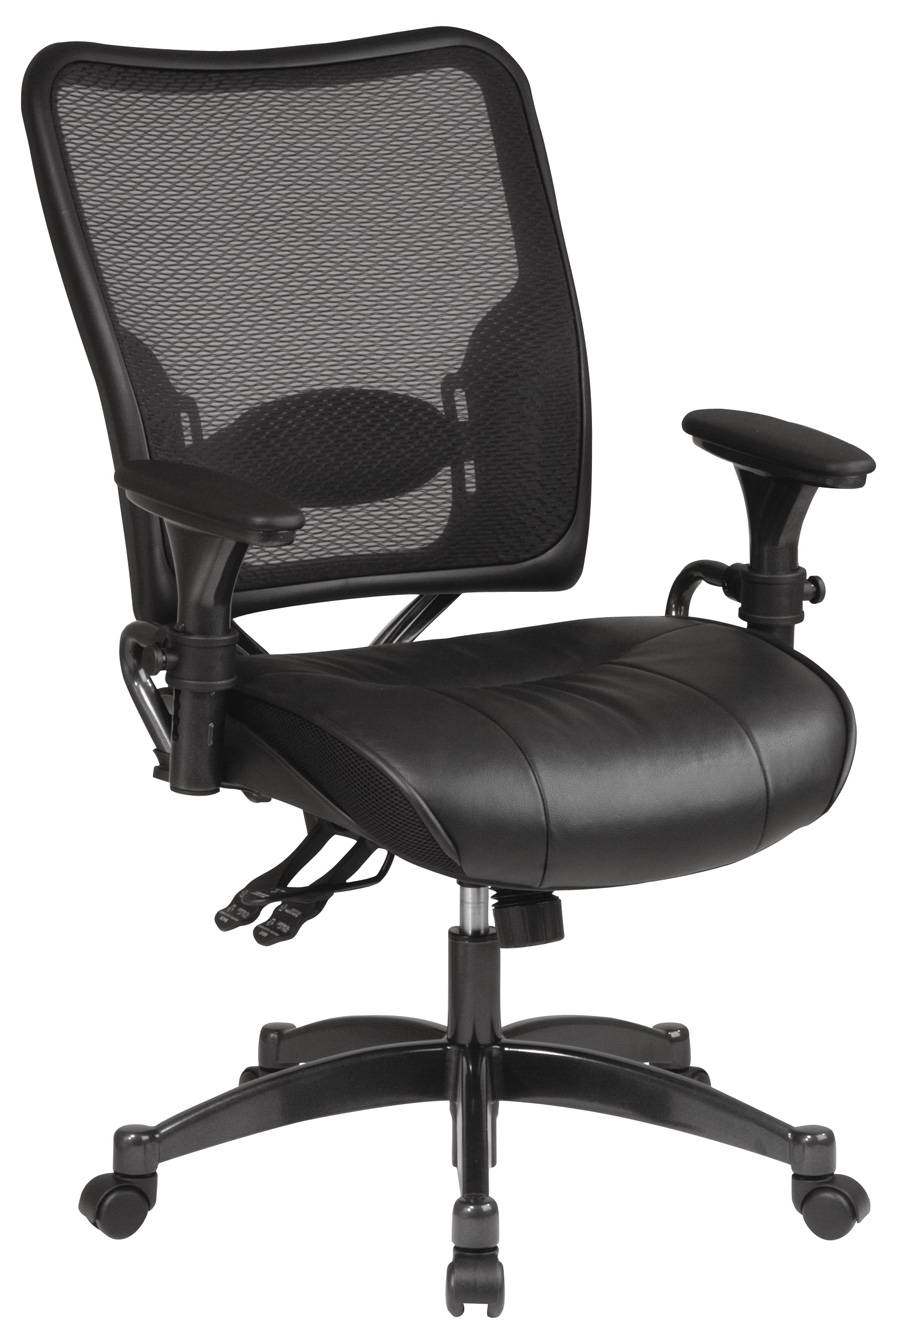 Professional Dual Function Ergonomic Airgrid 174 Back And